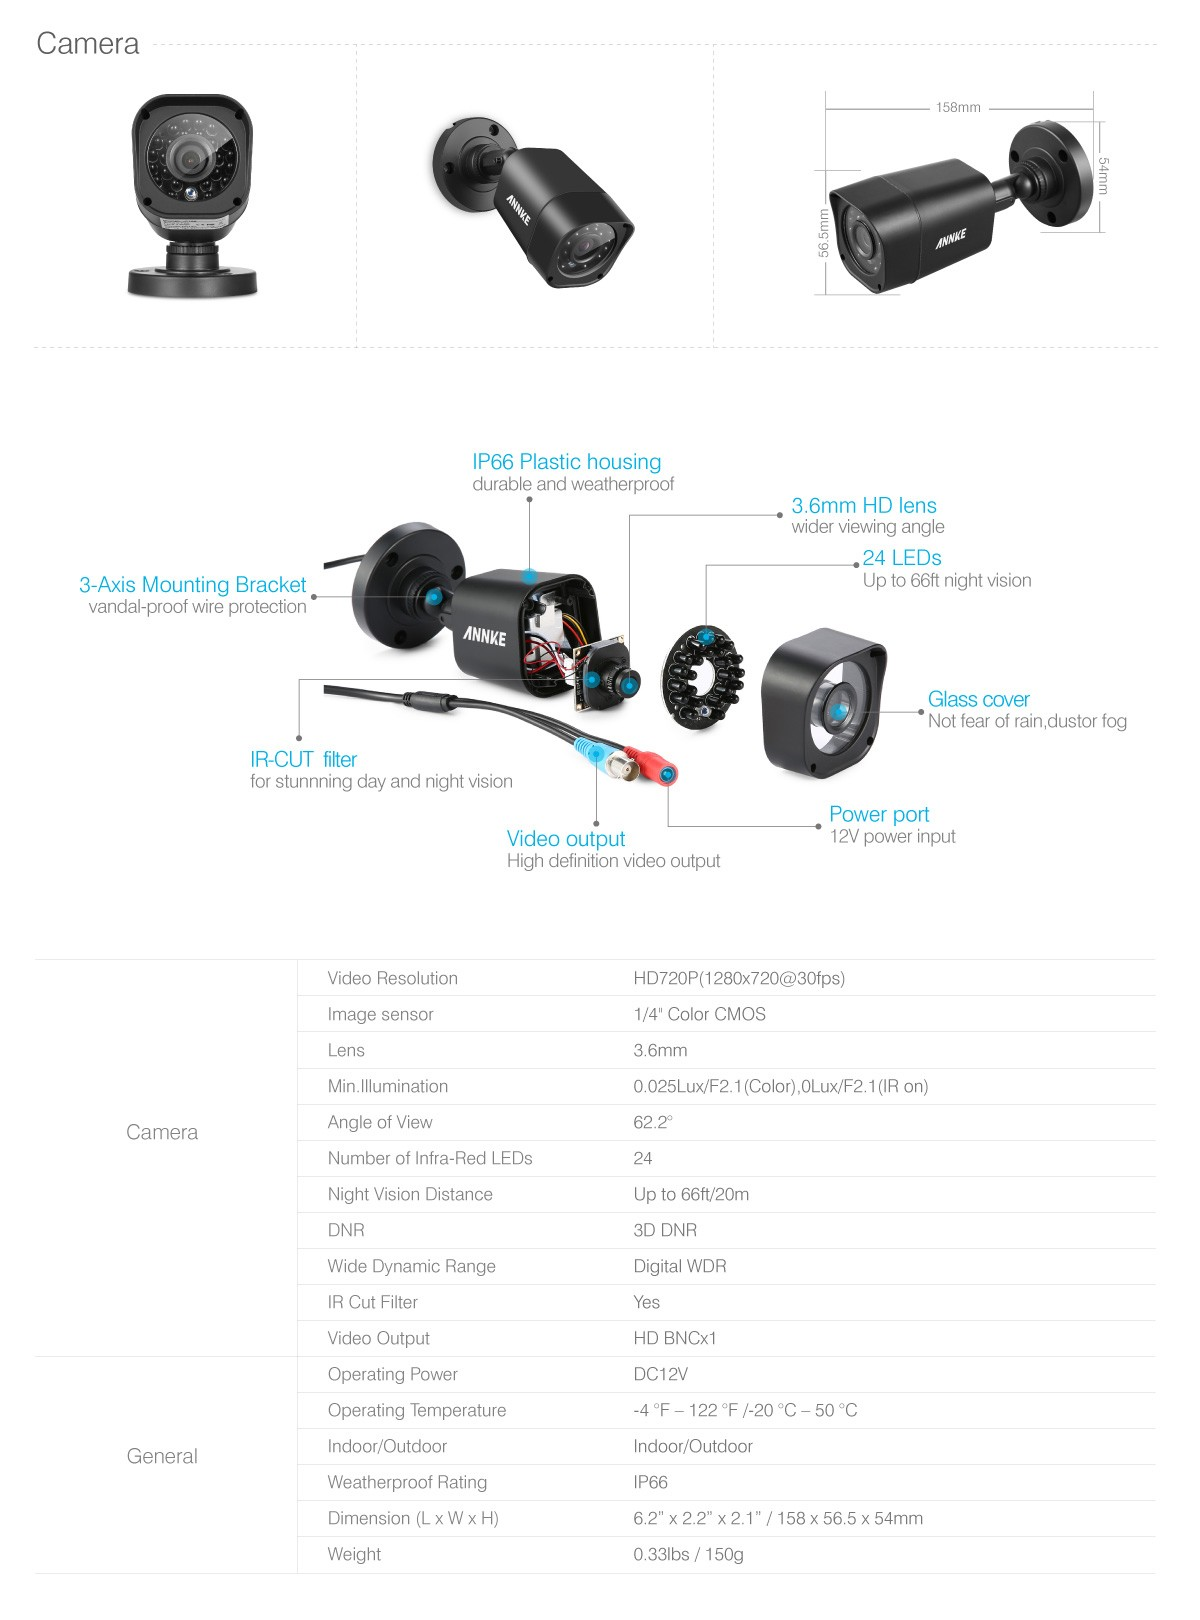 Specifications on the Bullet cameras